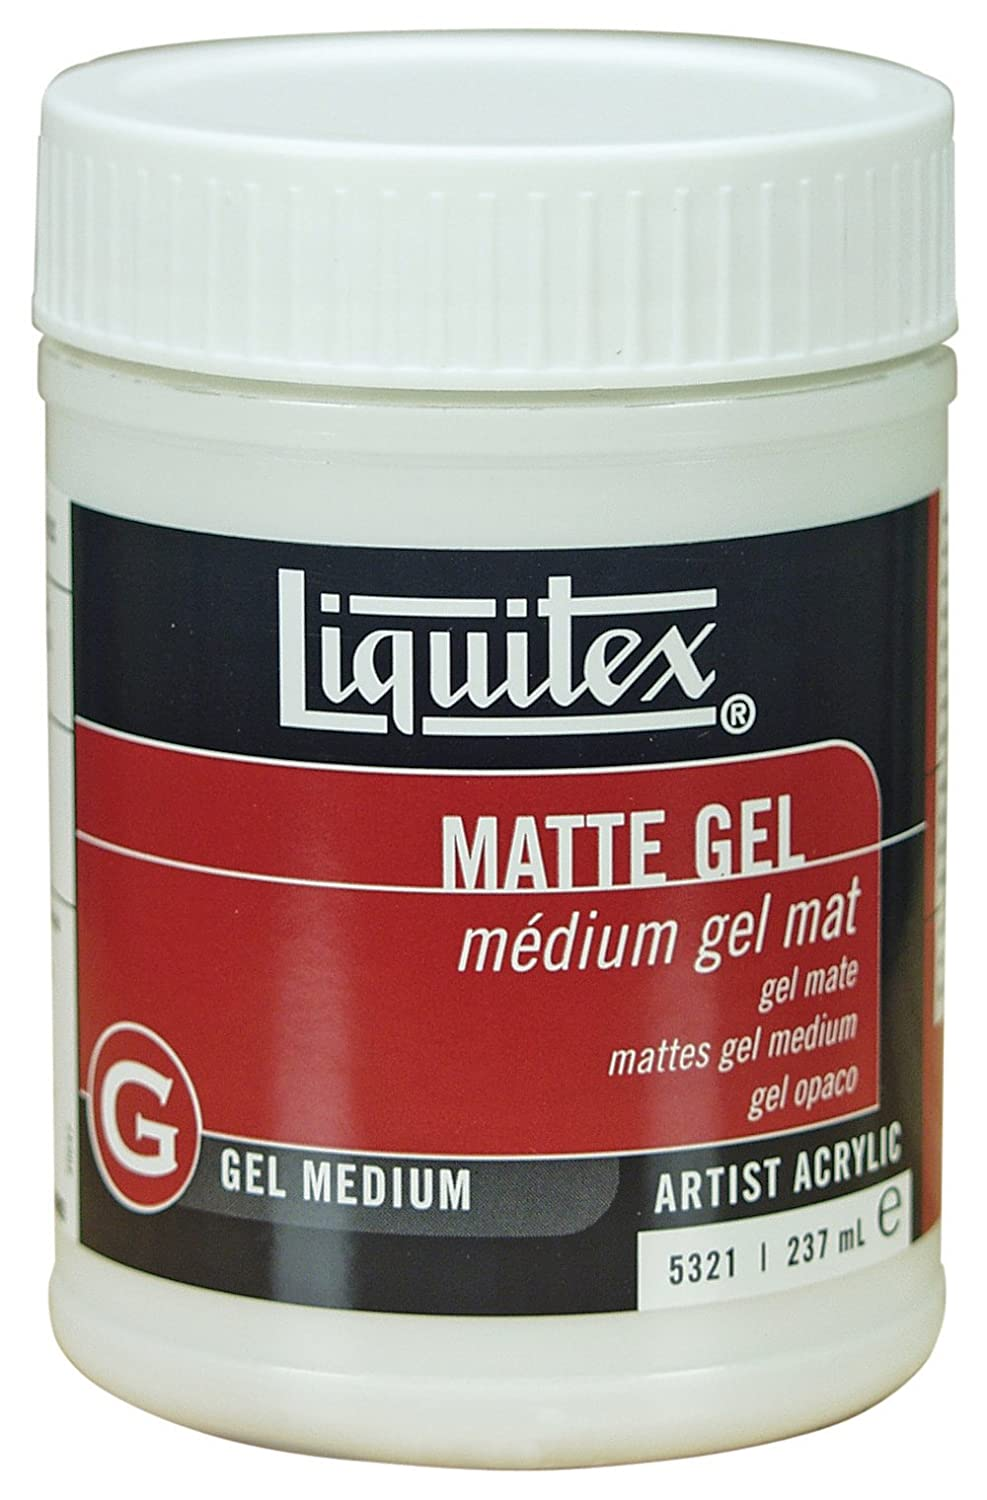 Professional matte gel medium image transfer wood water for Gloss medium for acrylic painting